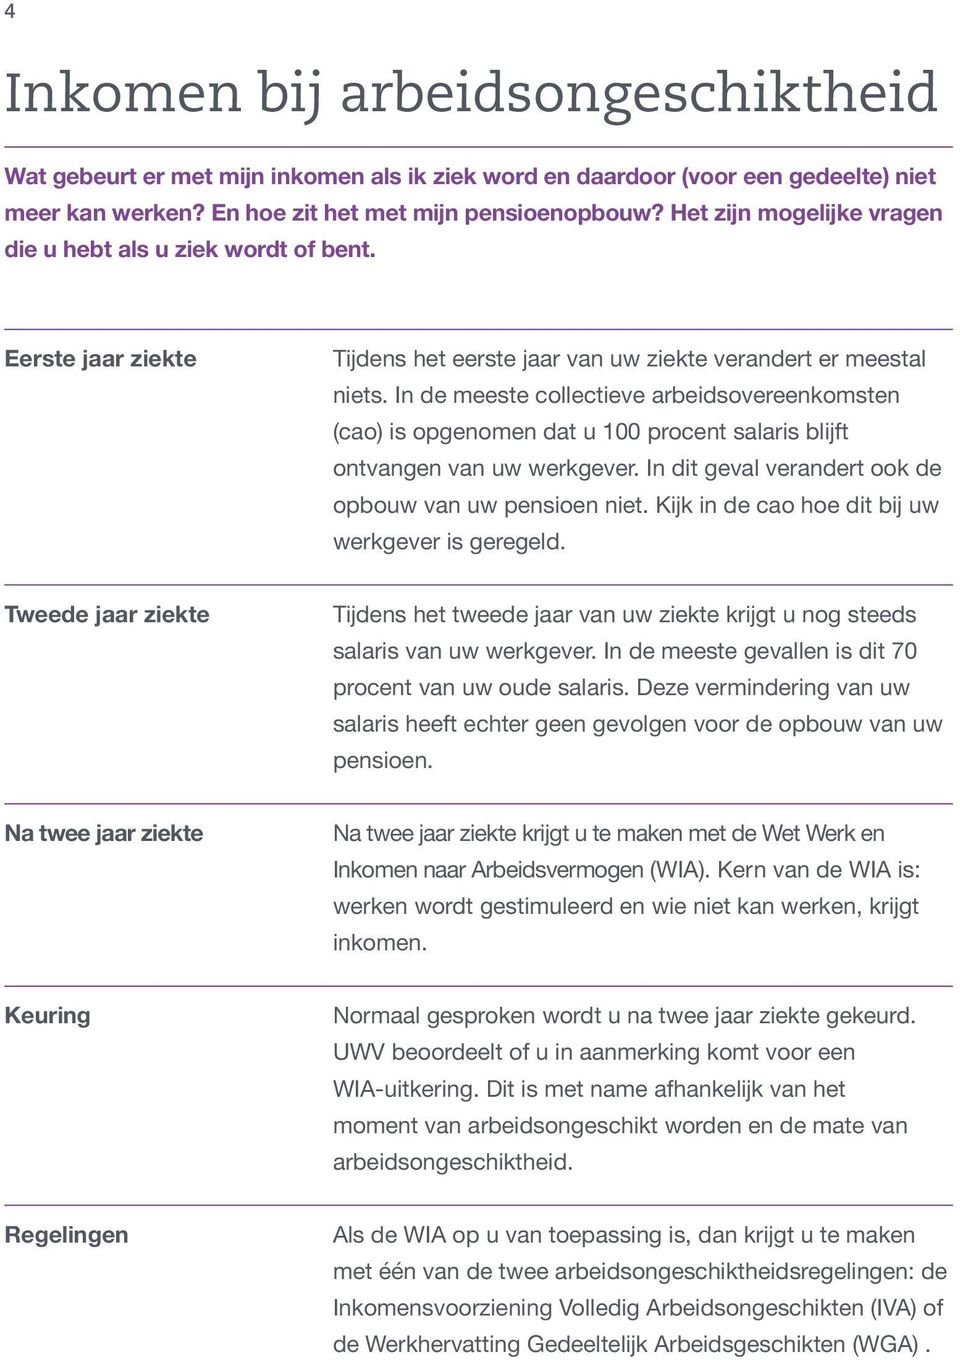 In de meeste collectieve arbeidsovereenkomsten (cao) is opgenomen dat u 100 procent salaris blijft ontvangen van uw werkgever. In dit geval verandert ook de opbouw van uw pensioen niet.